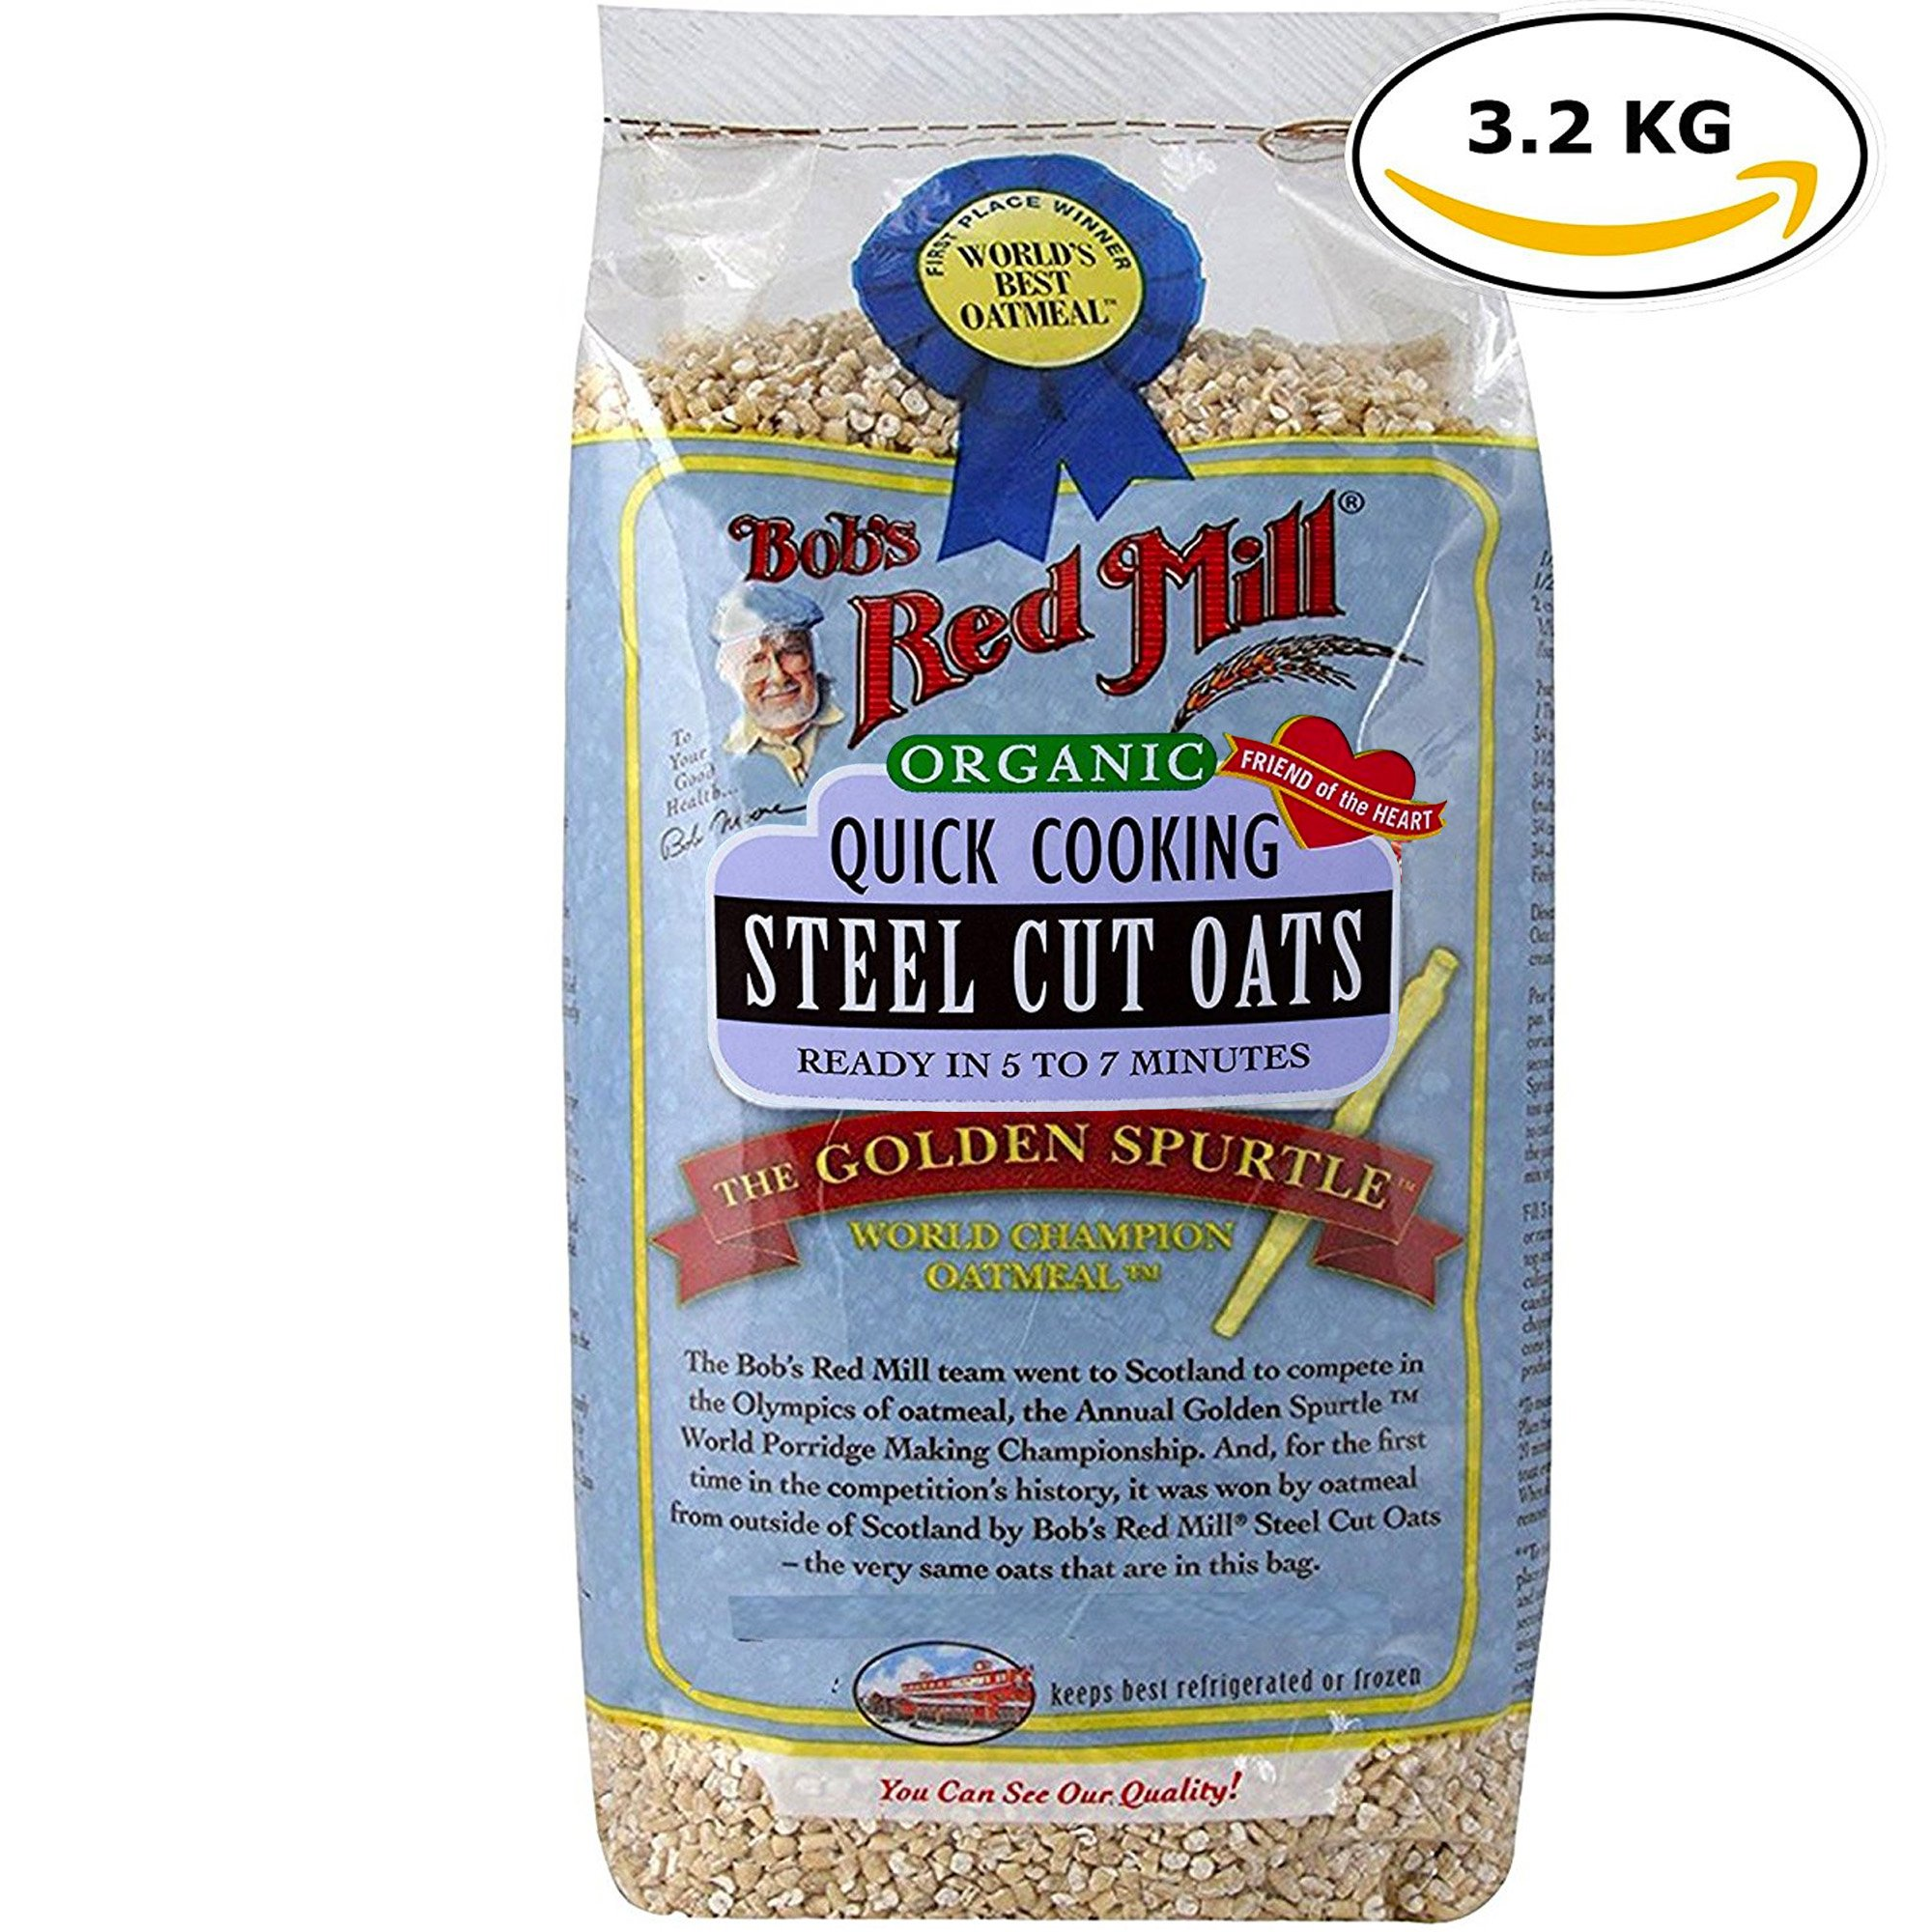 Bob's Red Mills Quick Cooking Organic Steel Cut Oats, The Golden Spurtles 7.1 Lbs Bag